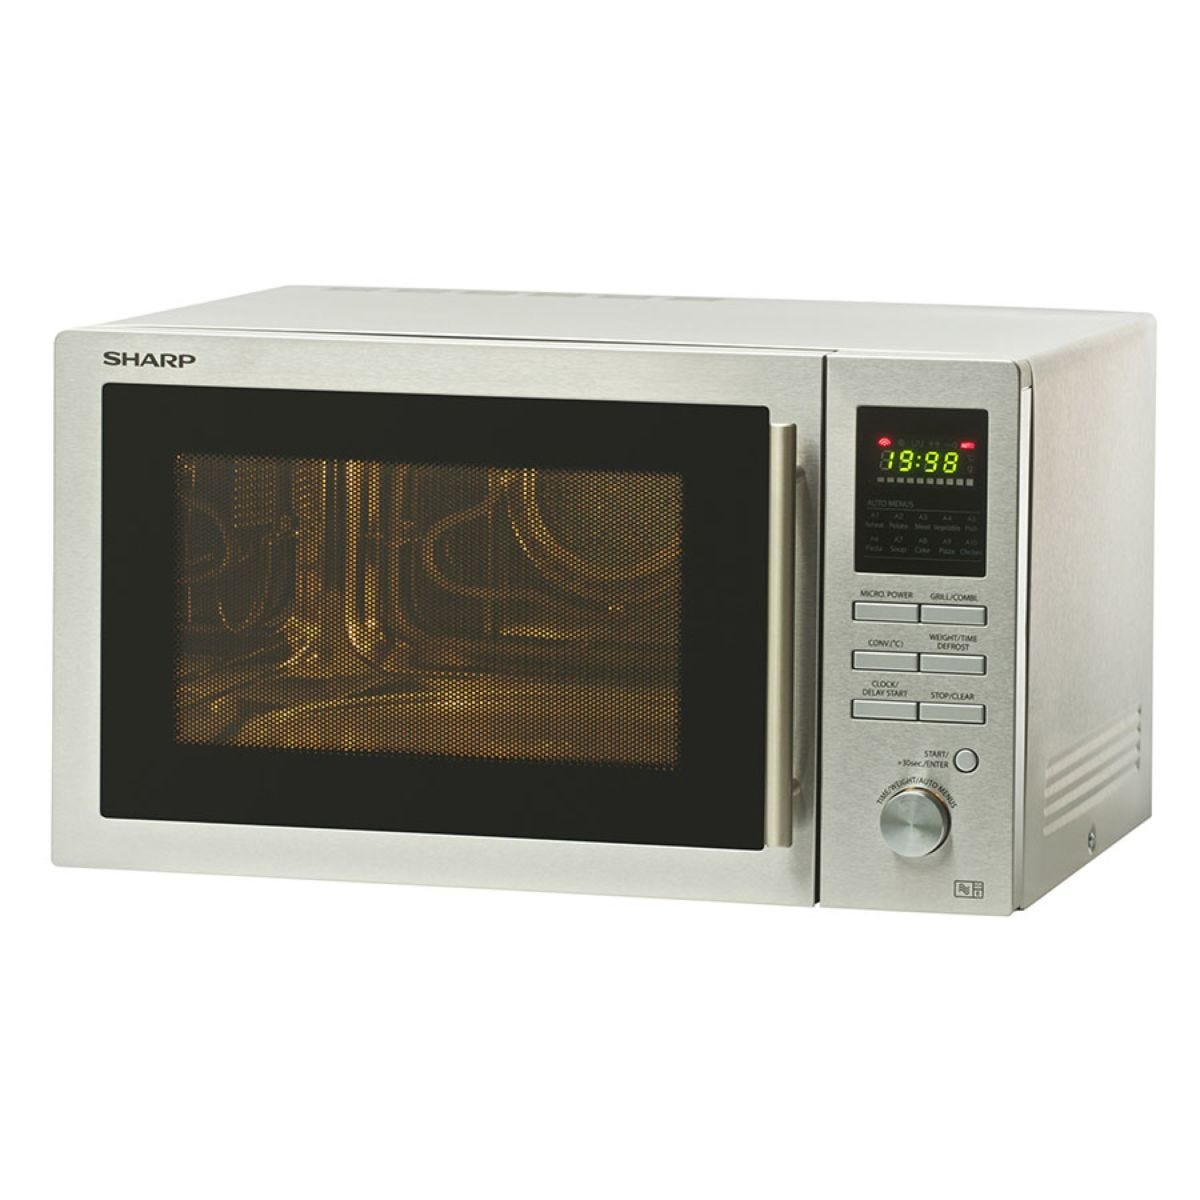 Sharp R82STMA 25L 900W Combination Microwave - Stainless Steel